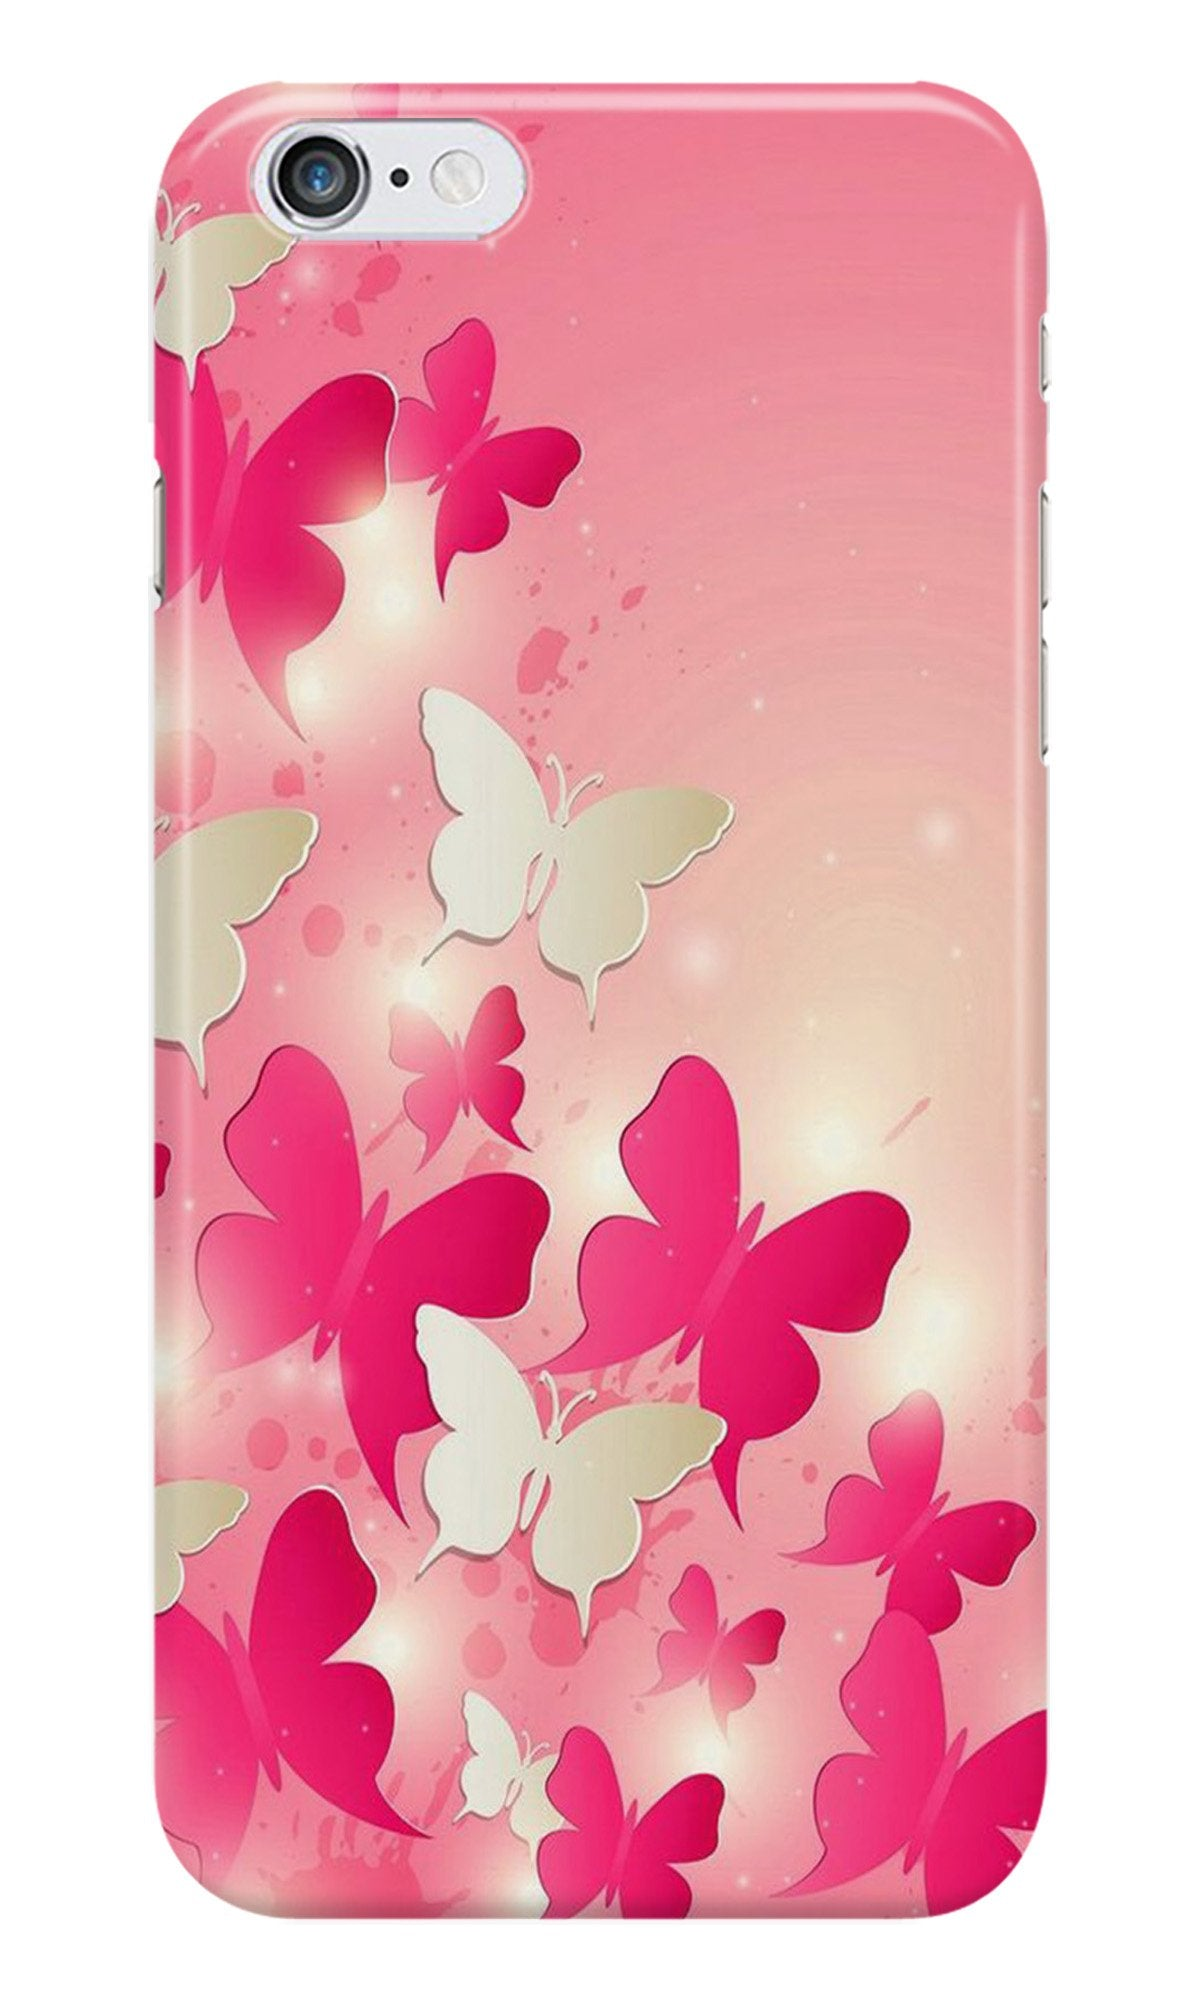 White Pick Butterflies Case for iPhone 6/ 6s